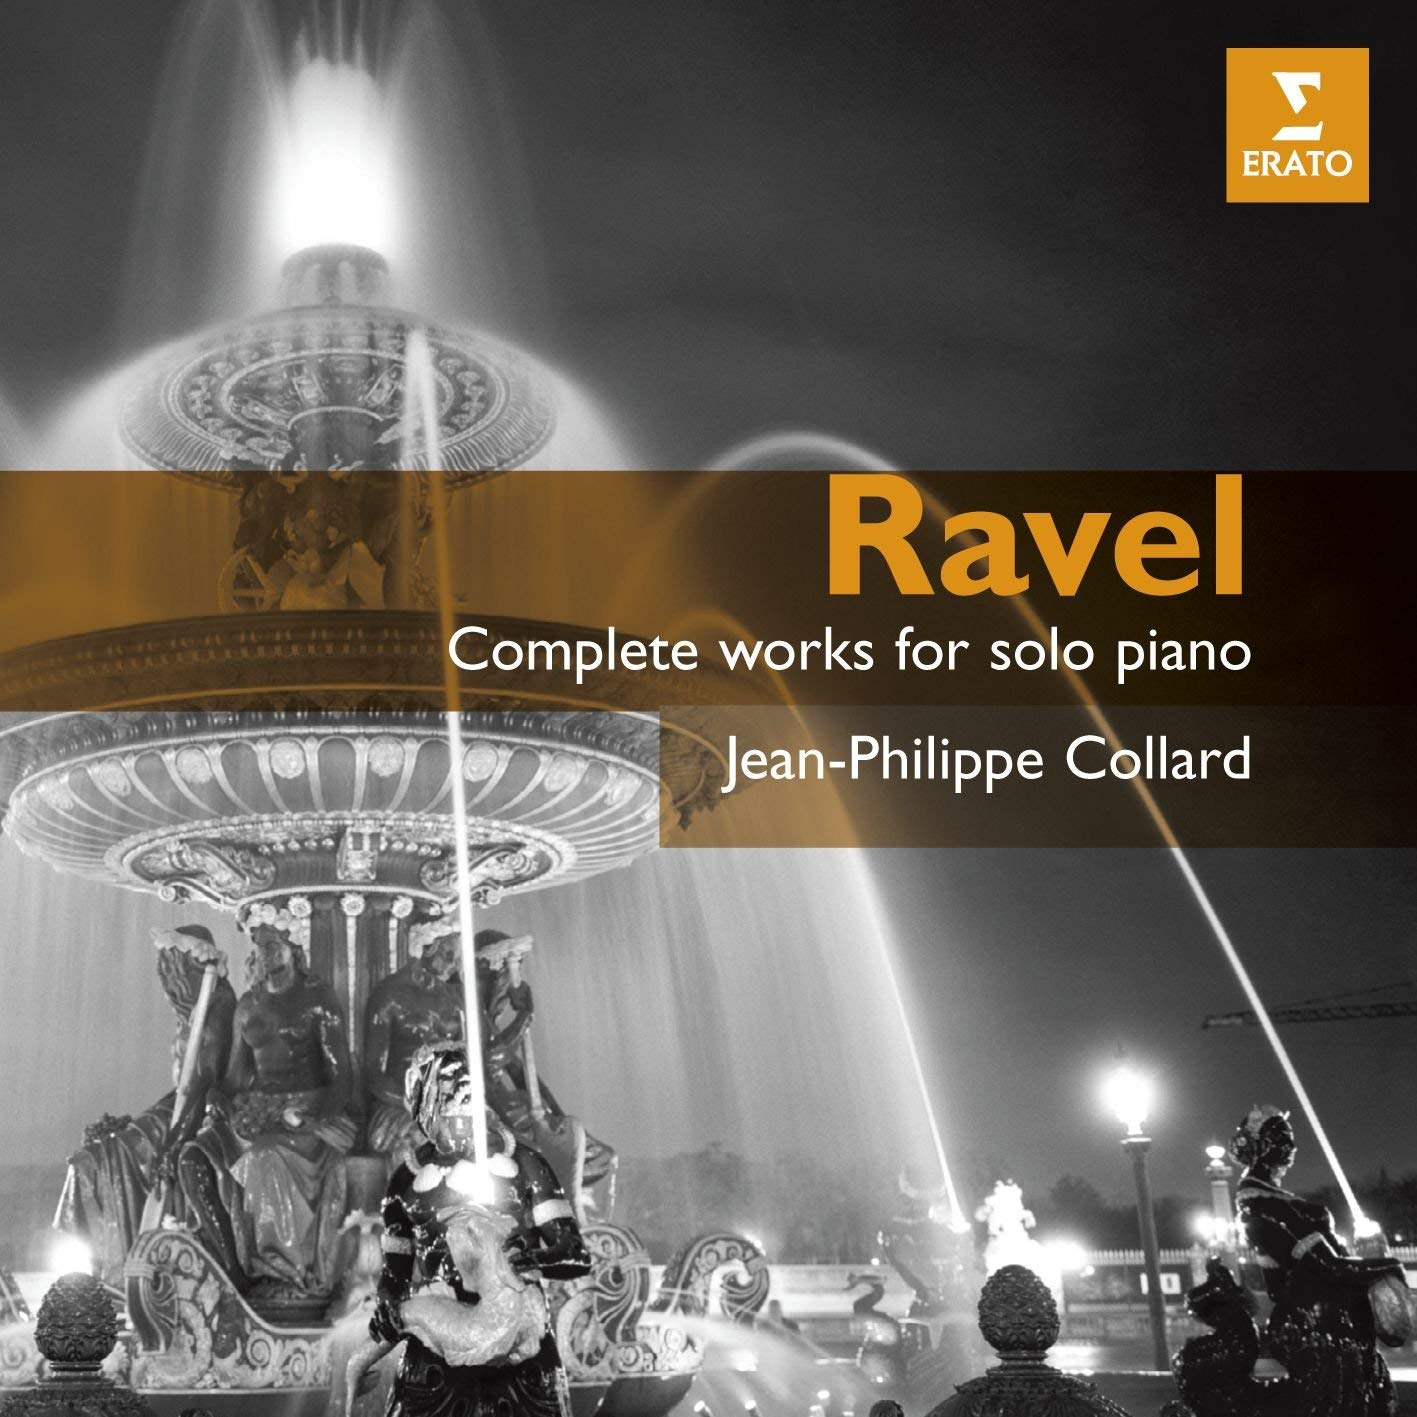 Jean-Philippe Collard, Ravel, Piano Concertos